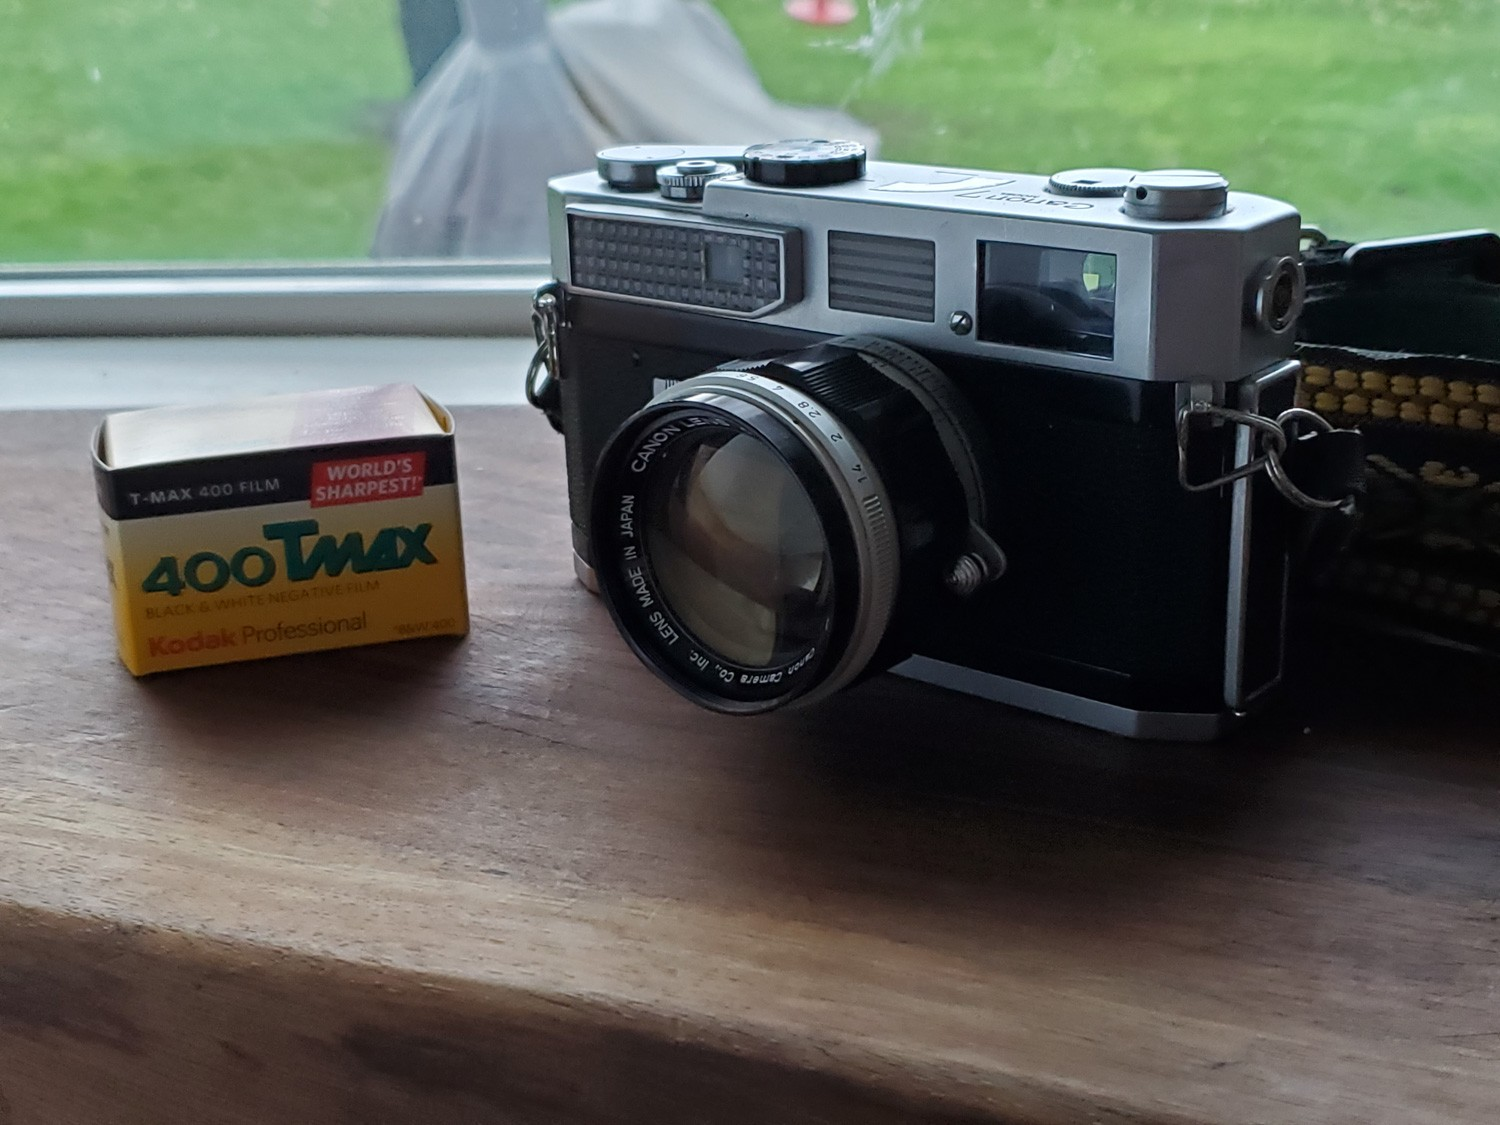 Canon 7 Rangefinder with Canon 50mm f/1.4 and Kodak T-MAX 400